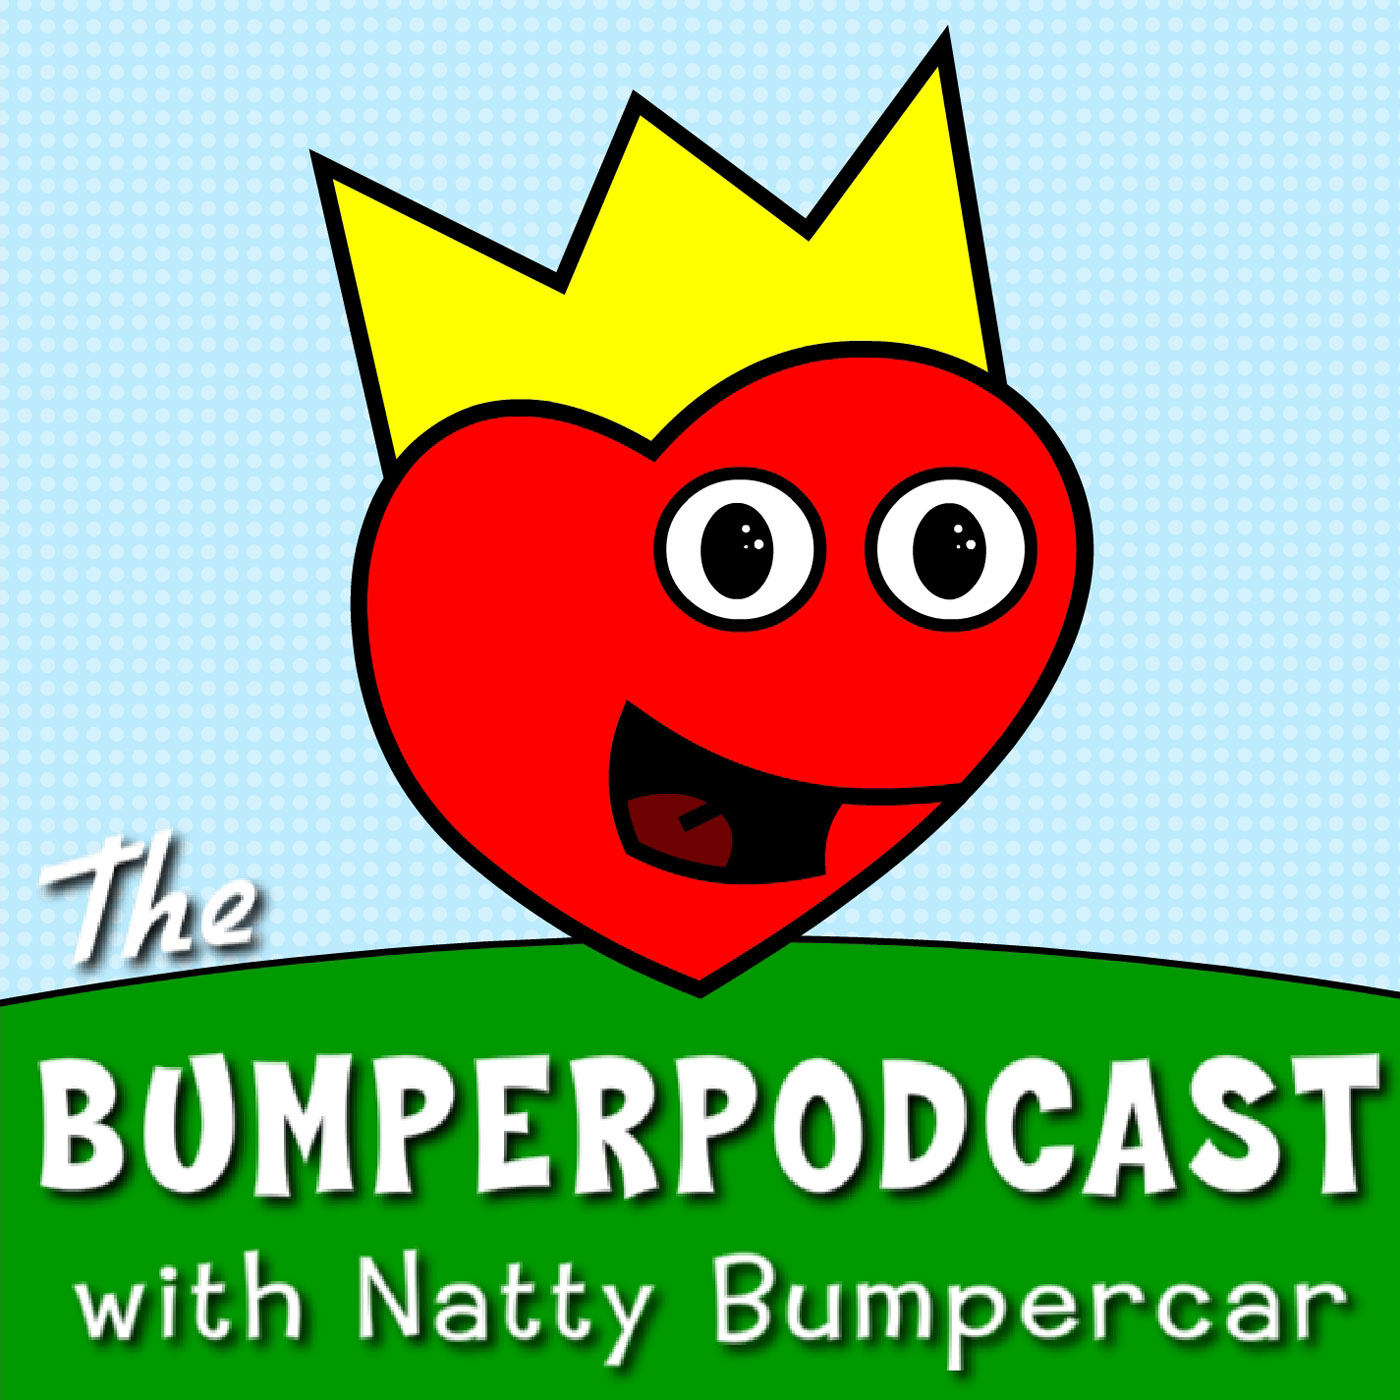 Bumperpodcast #372  Sick Natty and Football